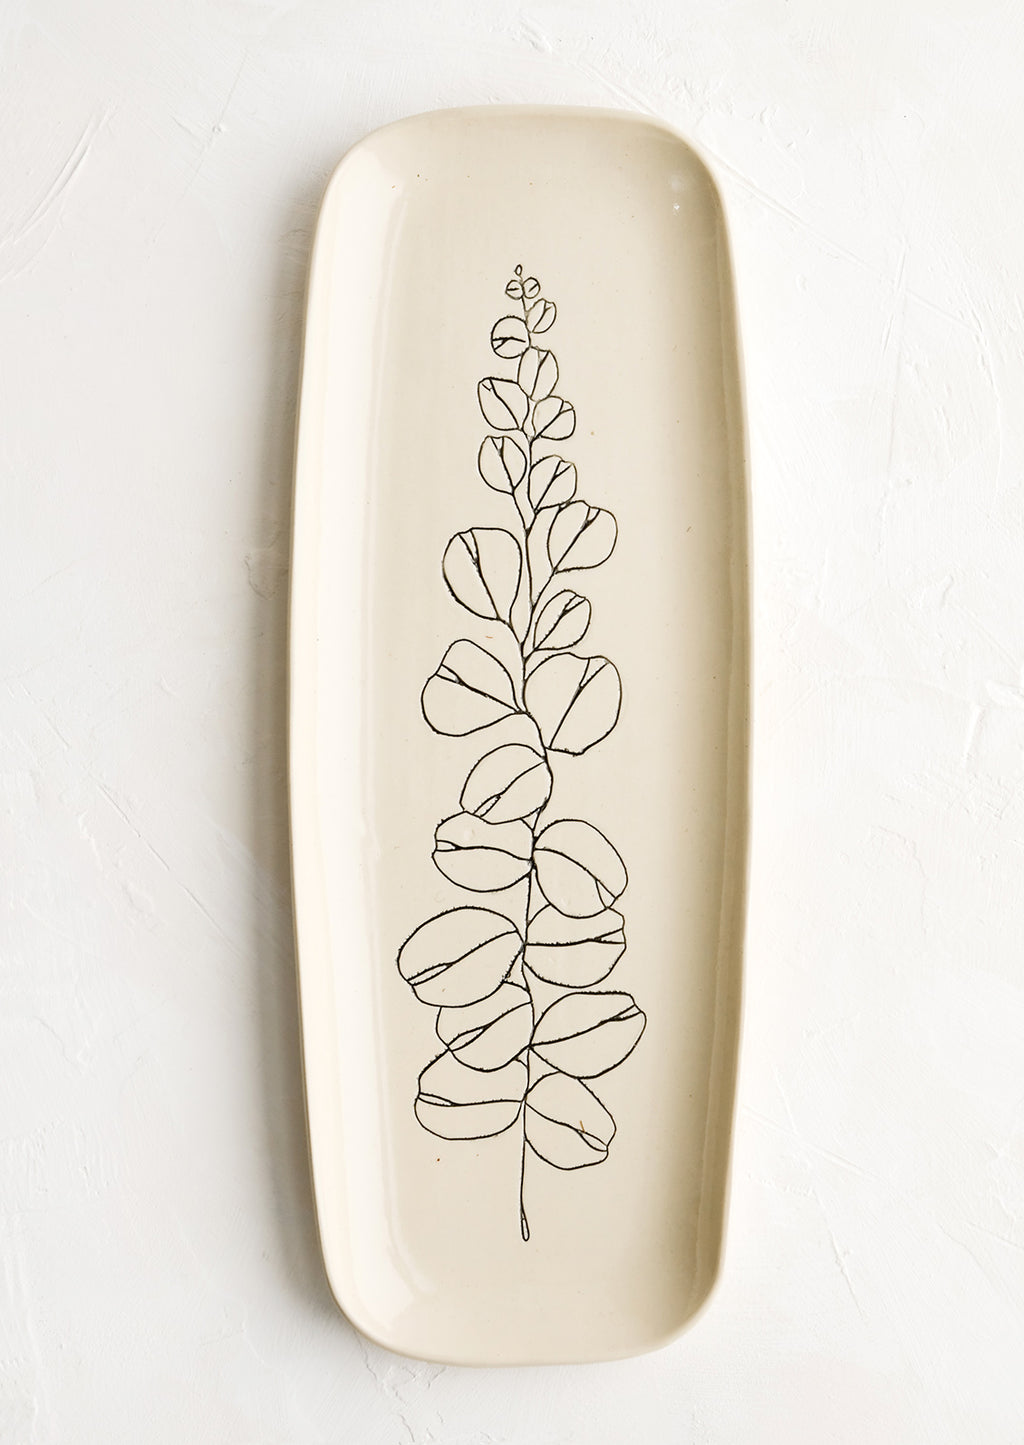 Eucalyptus: A long and skinny ceramic tray in natural bisque color with an etched black drawing of a eucalyptus branch.